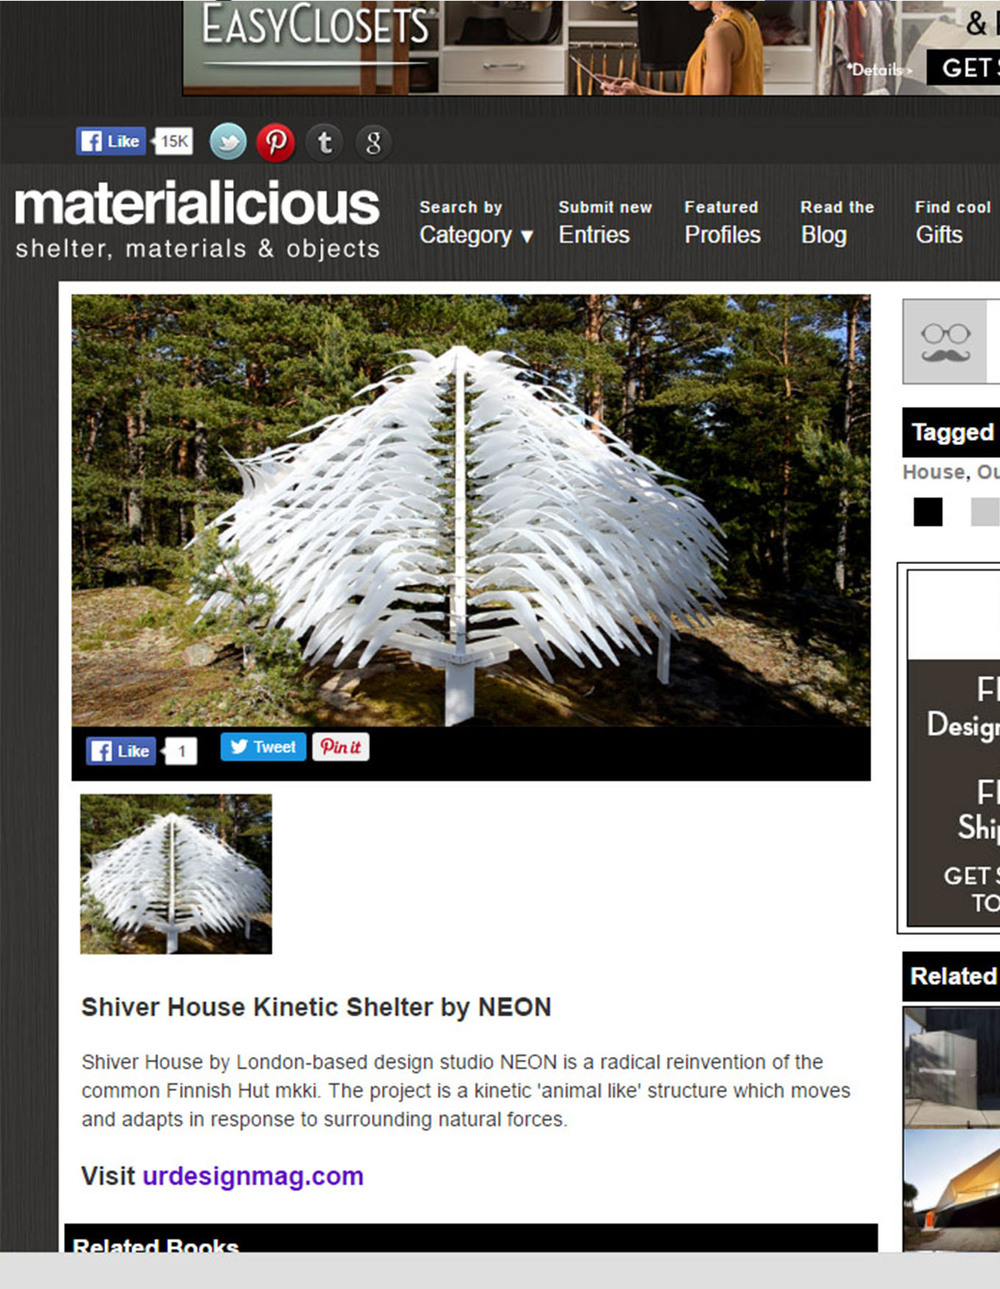 SHIVER HOUSE - Materialicious